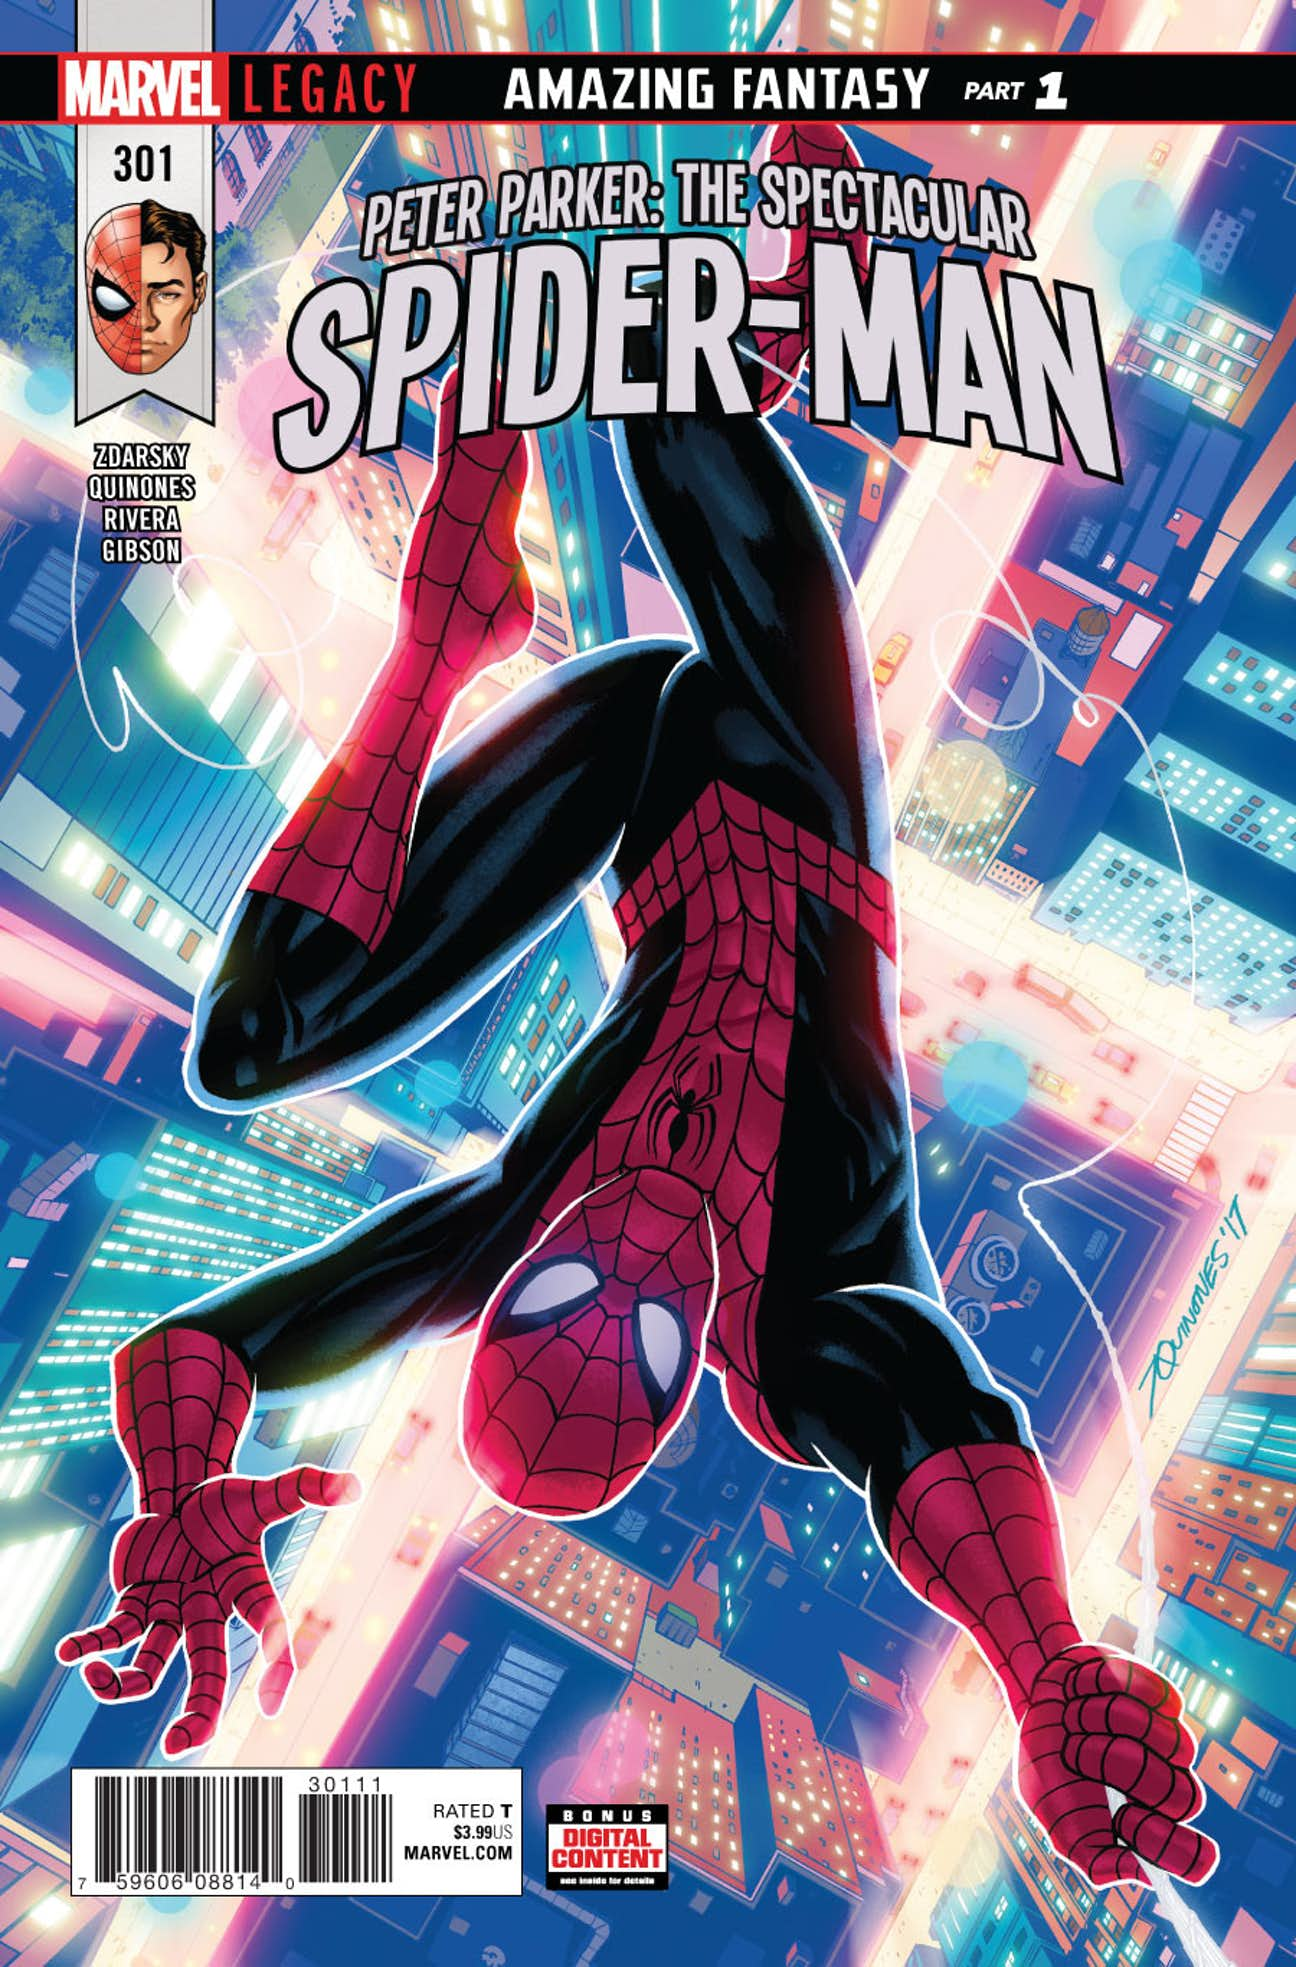 Peter Parker: The Spectacular Spider-Man Vol 1 301